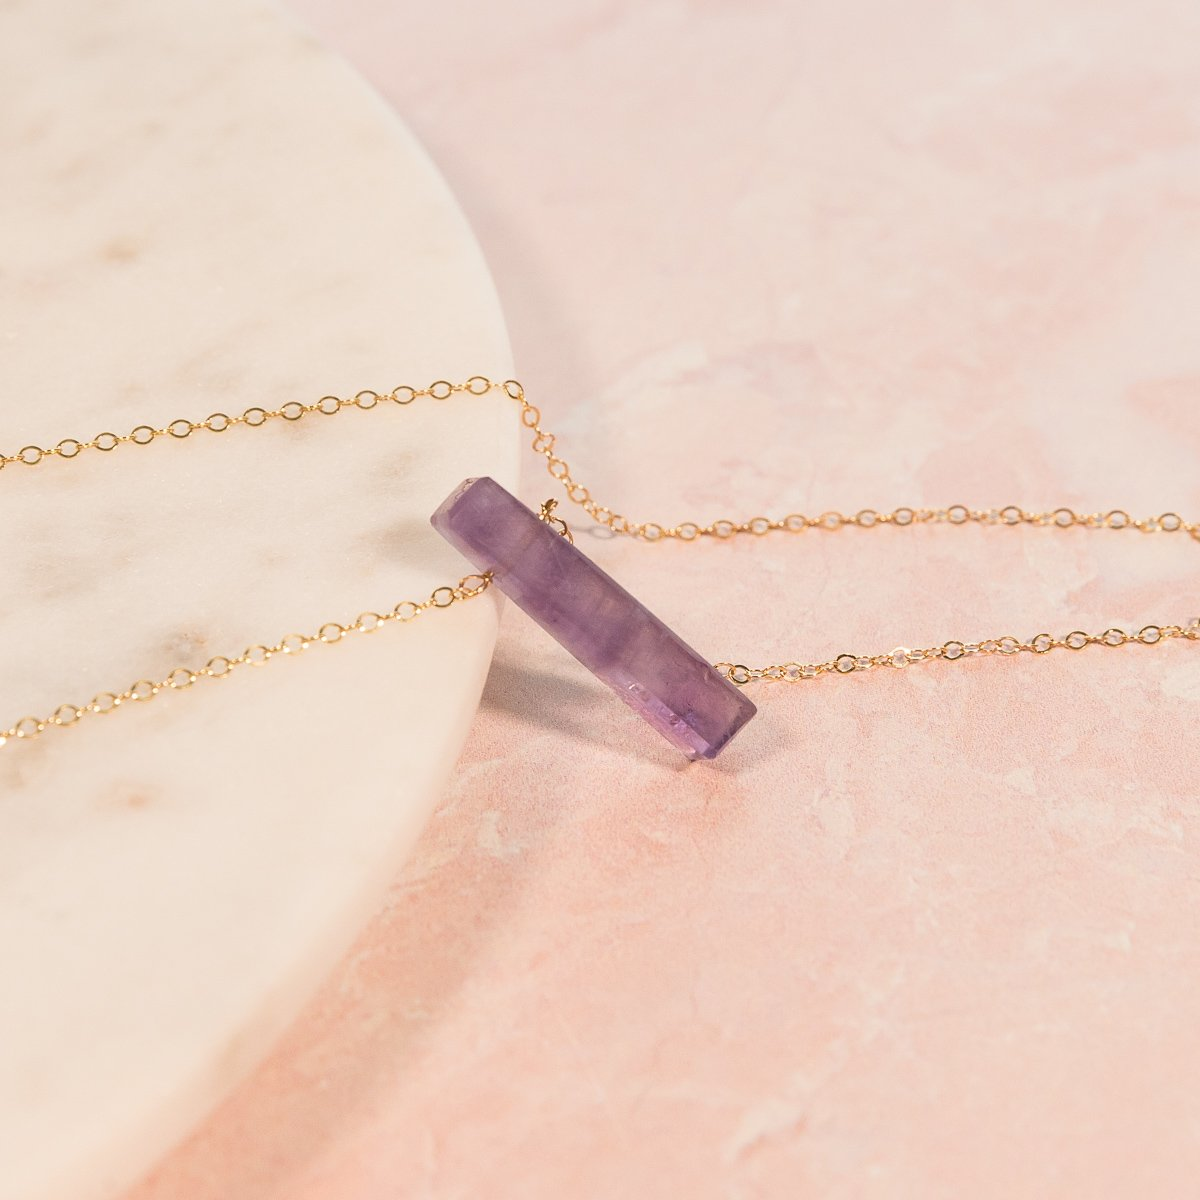 Amethyst Vertical Bar Necklace | Liz.Beth Jewelry Co.